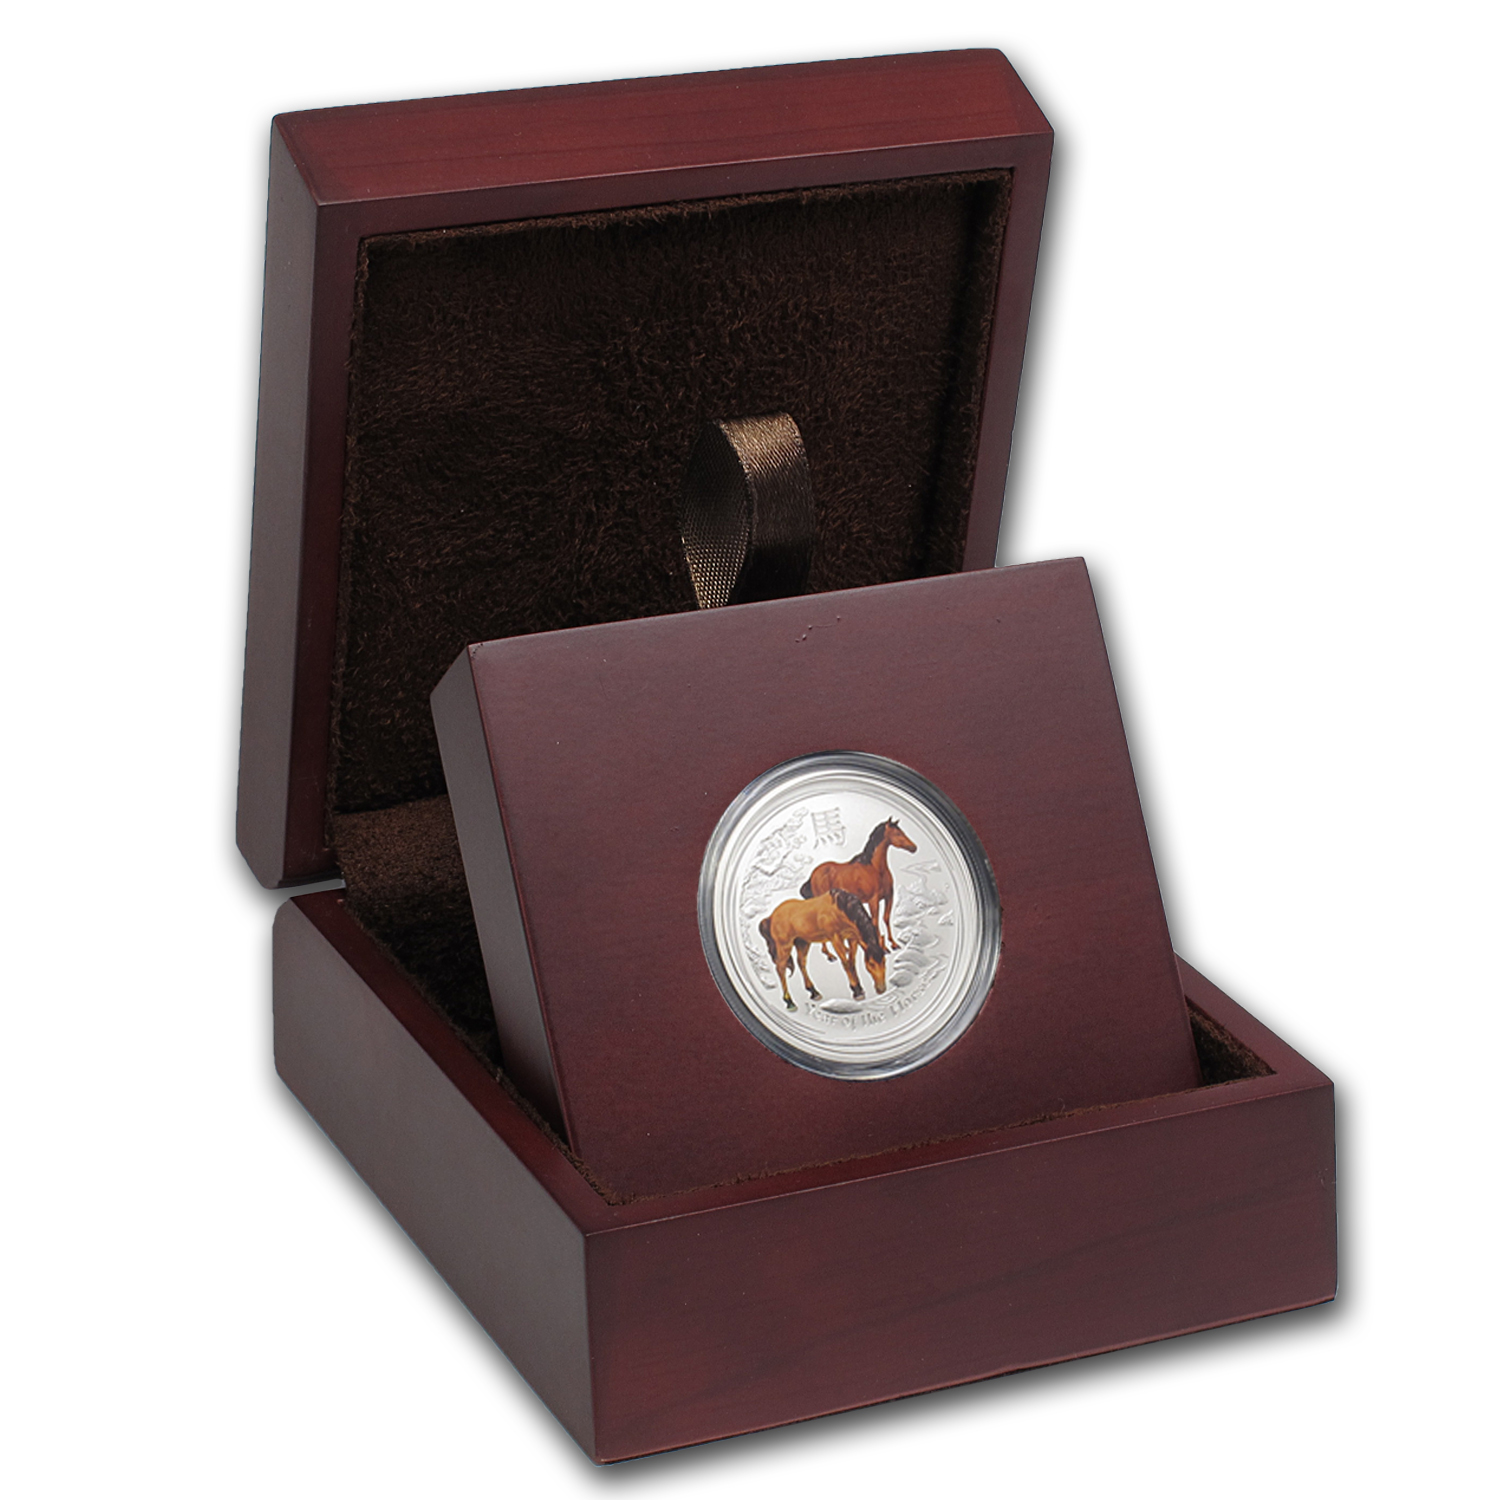 APMEX Wood Gift Box - 1/2 oz Perth Mint Silver Coin Series 2